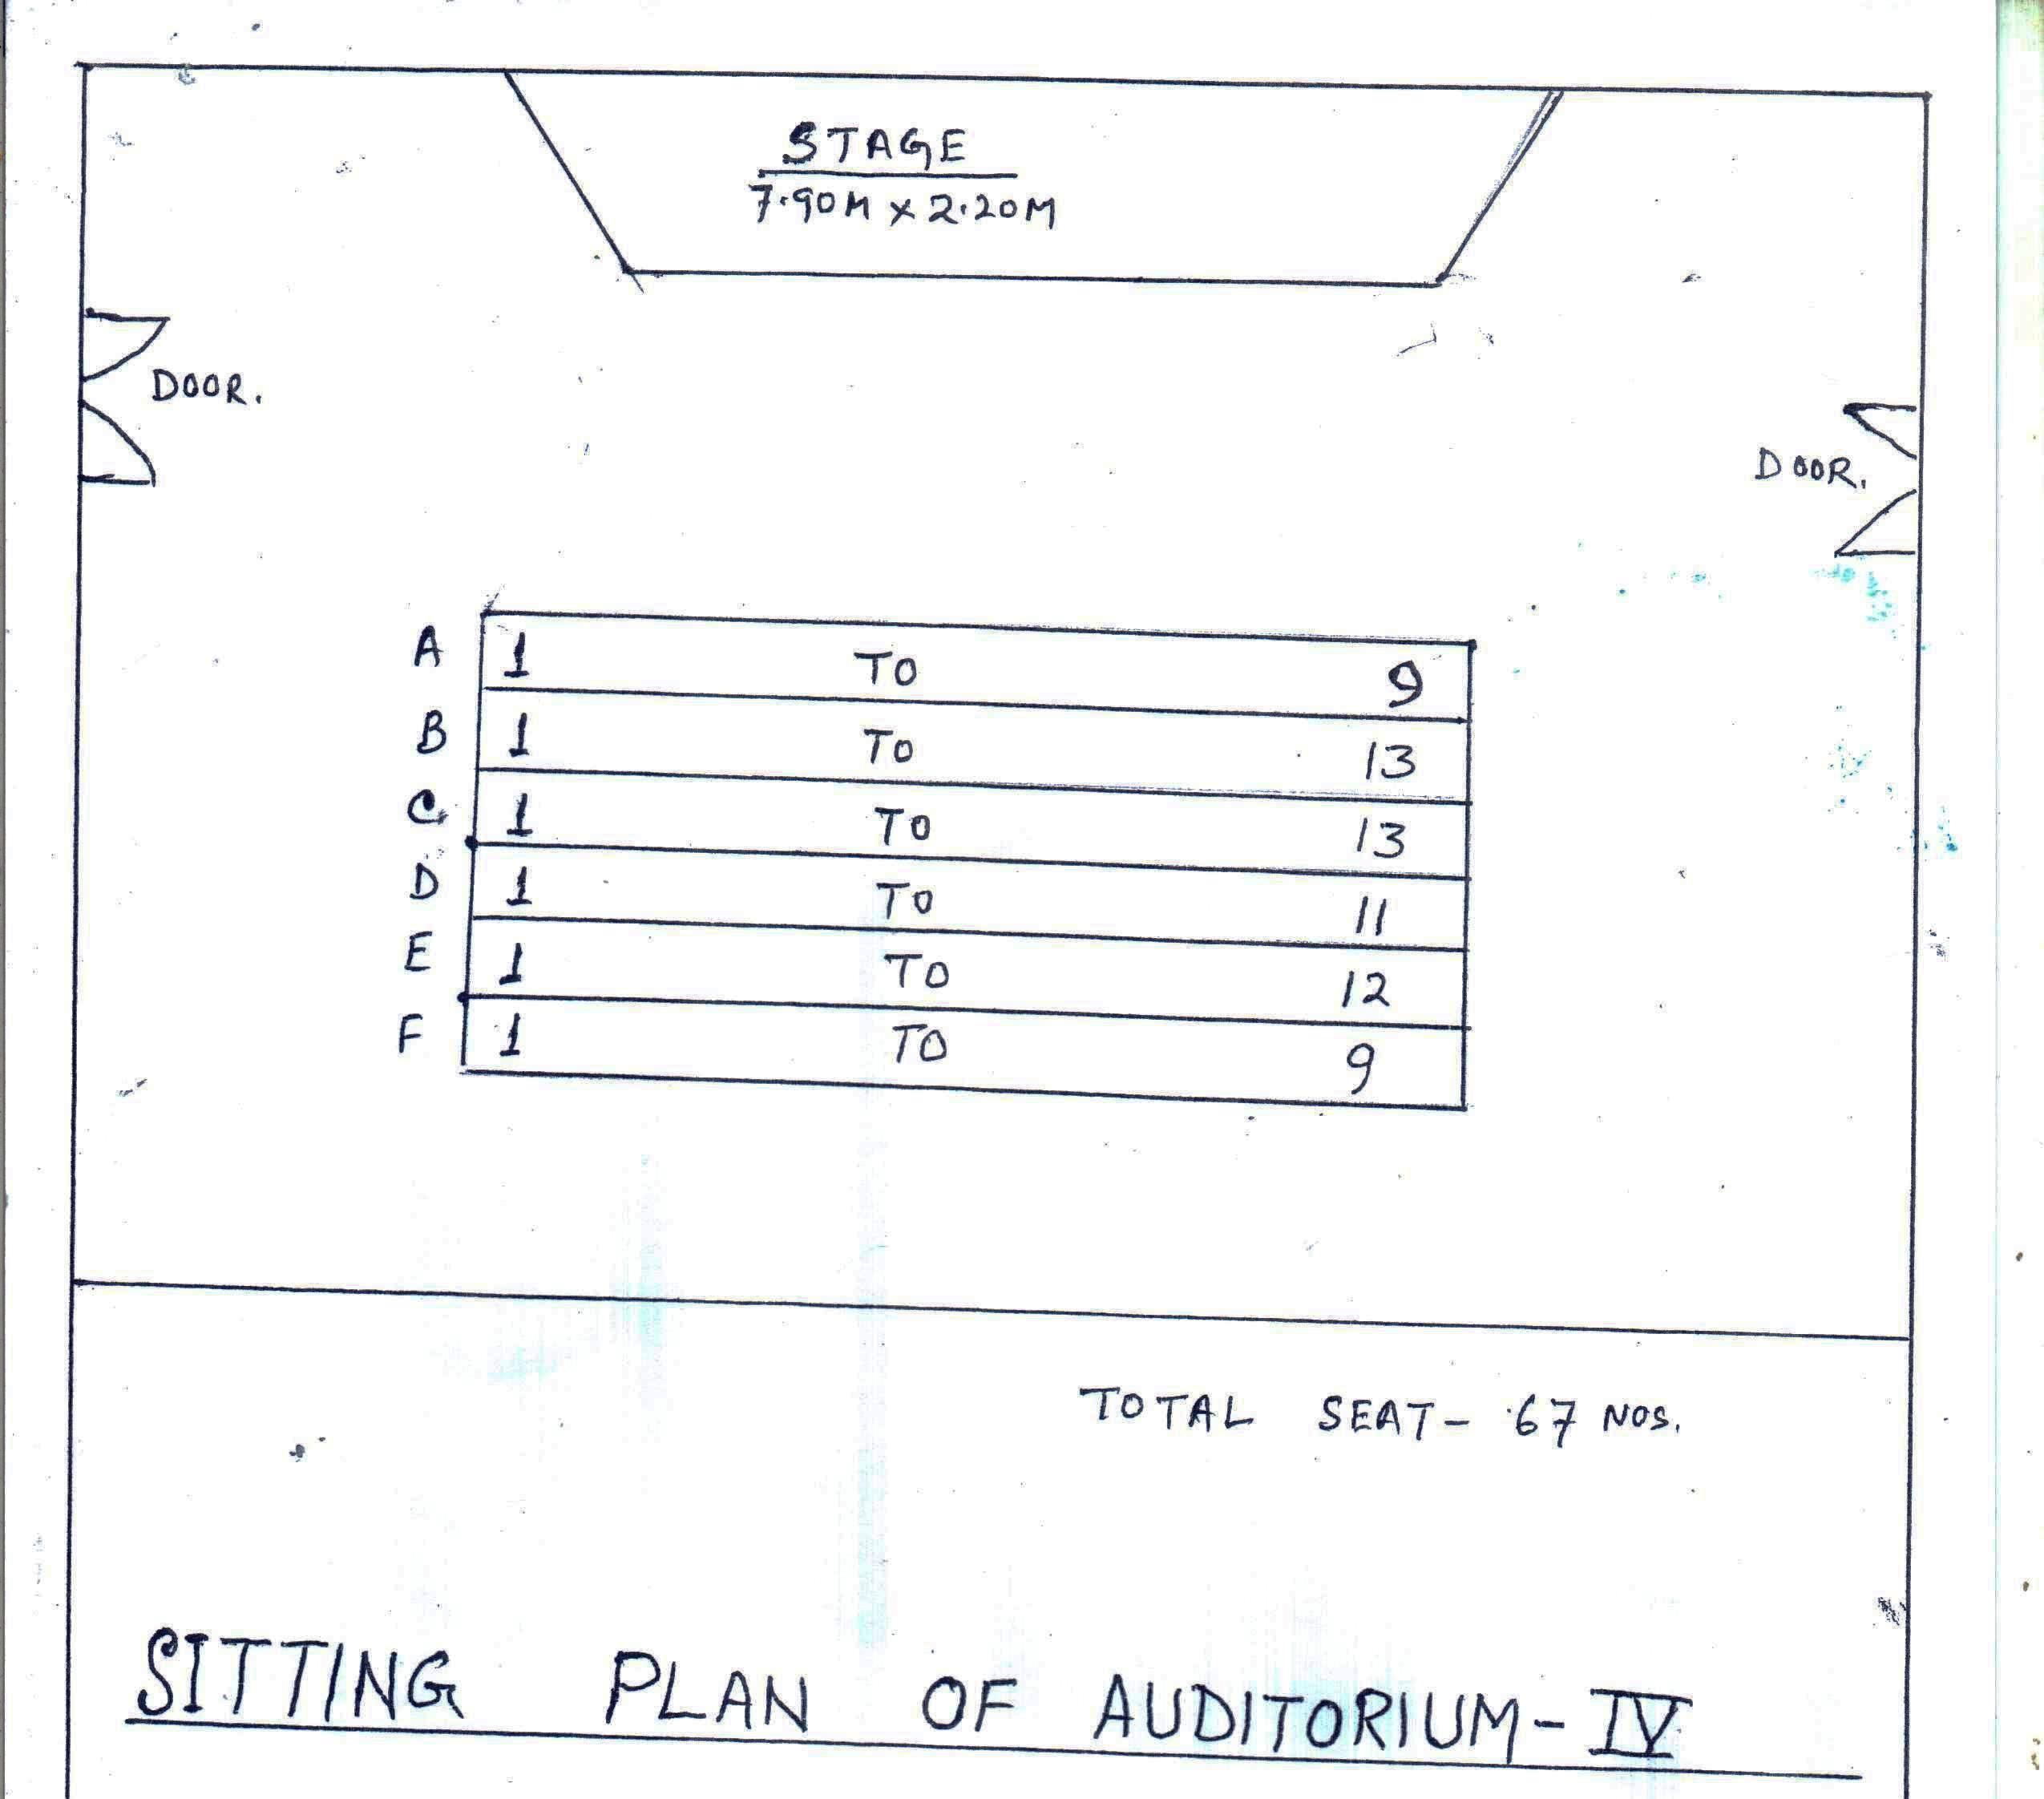 Auditorium - IV Seating plan